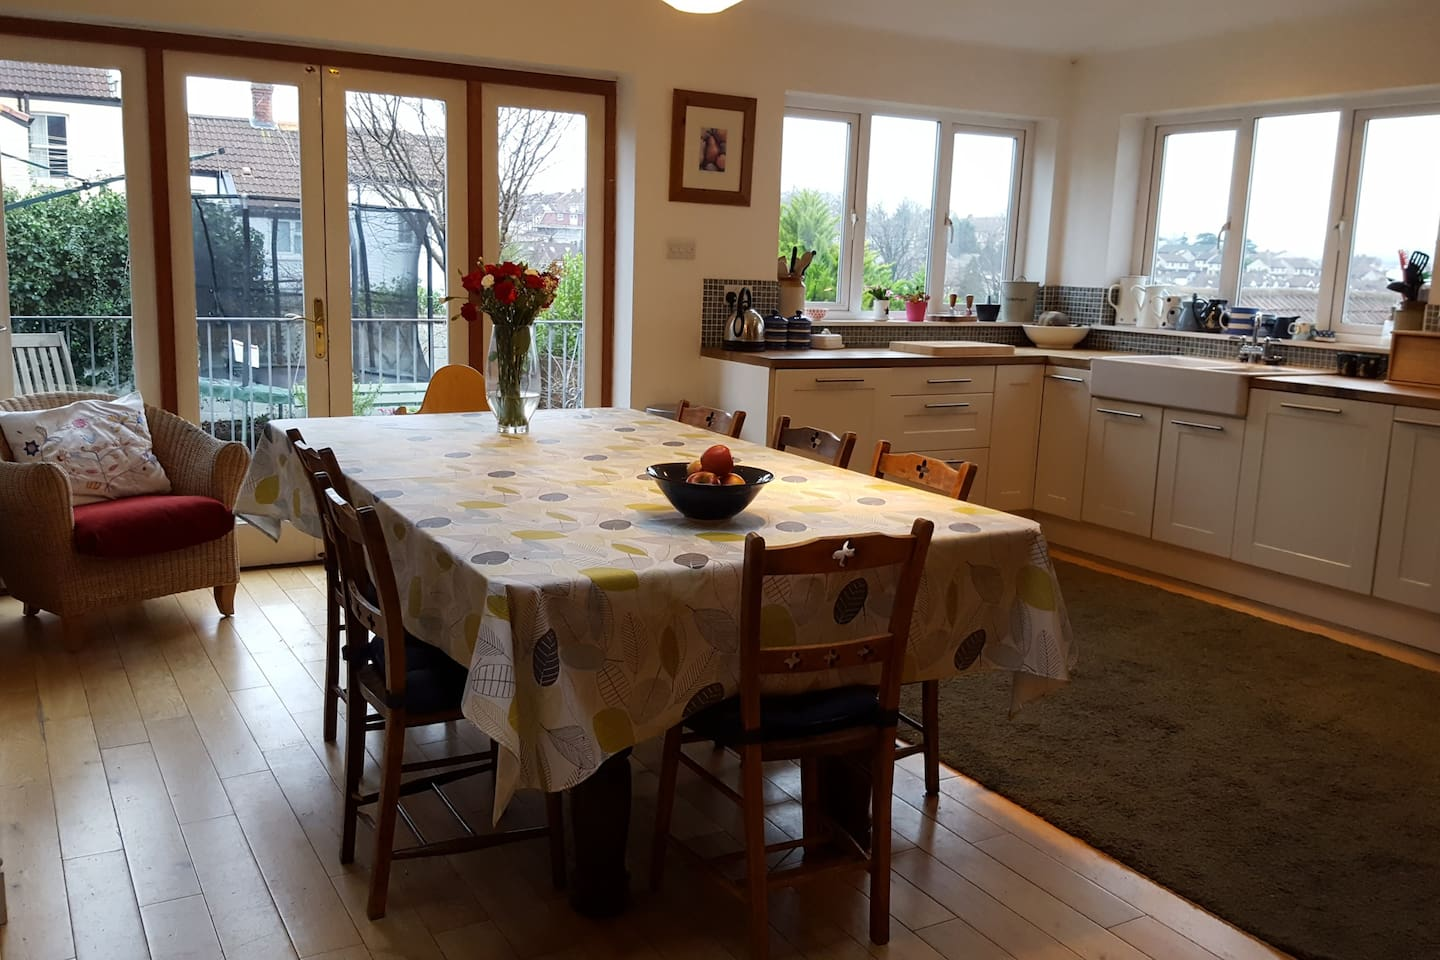 Large kitchen diner opening onto a deck with views over Bristol